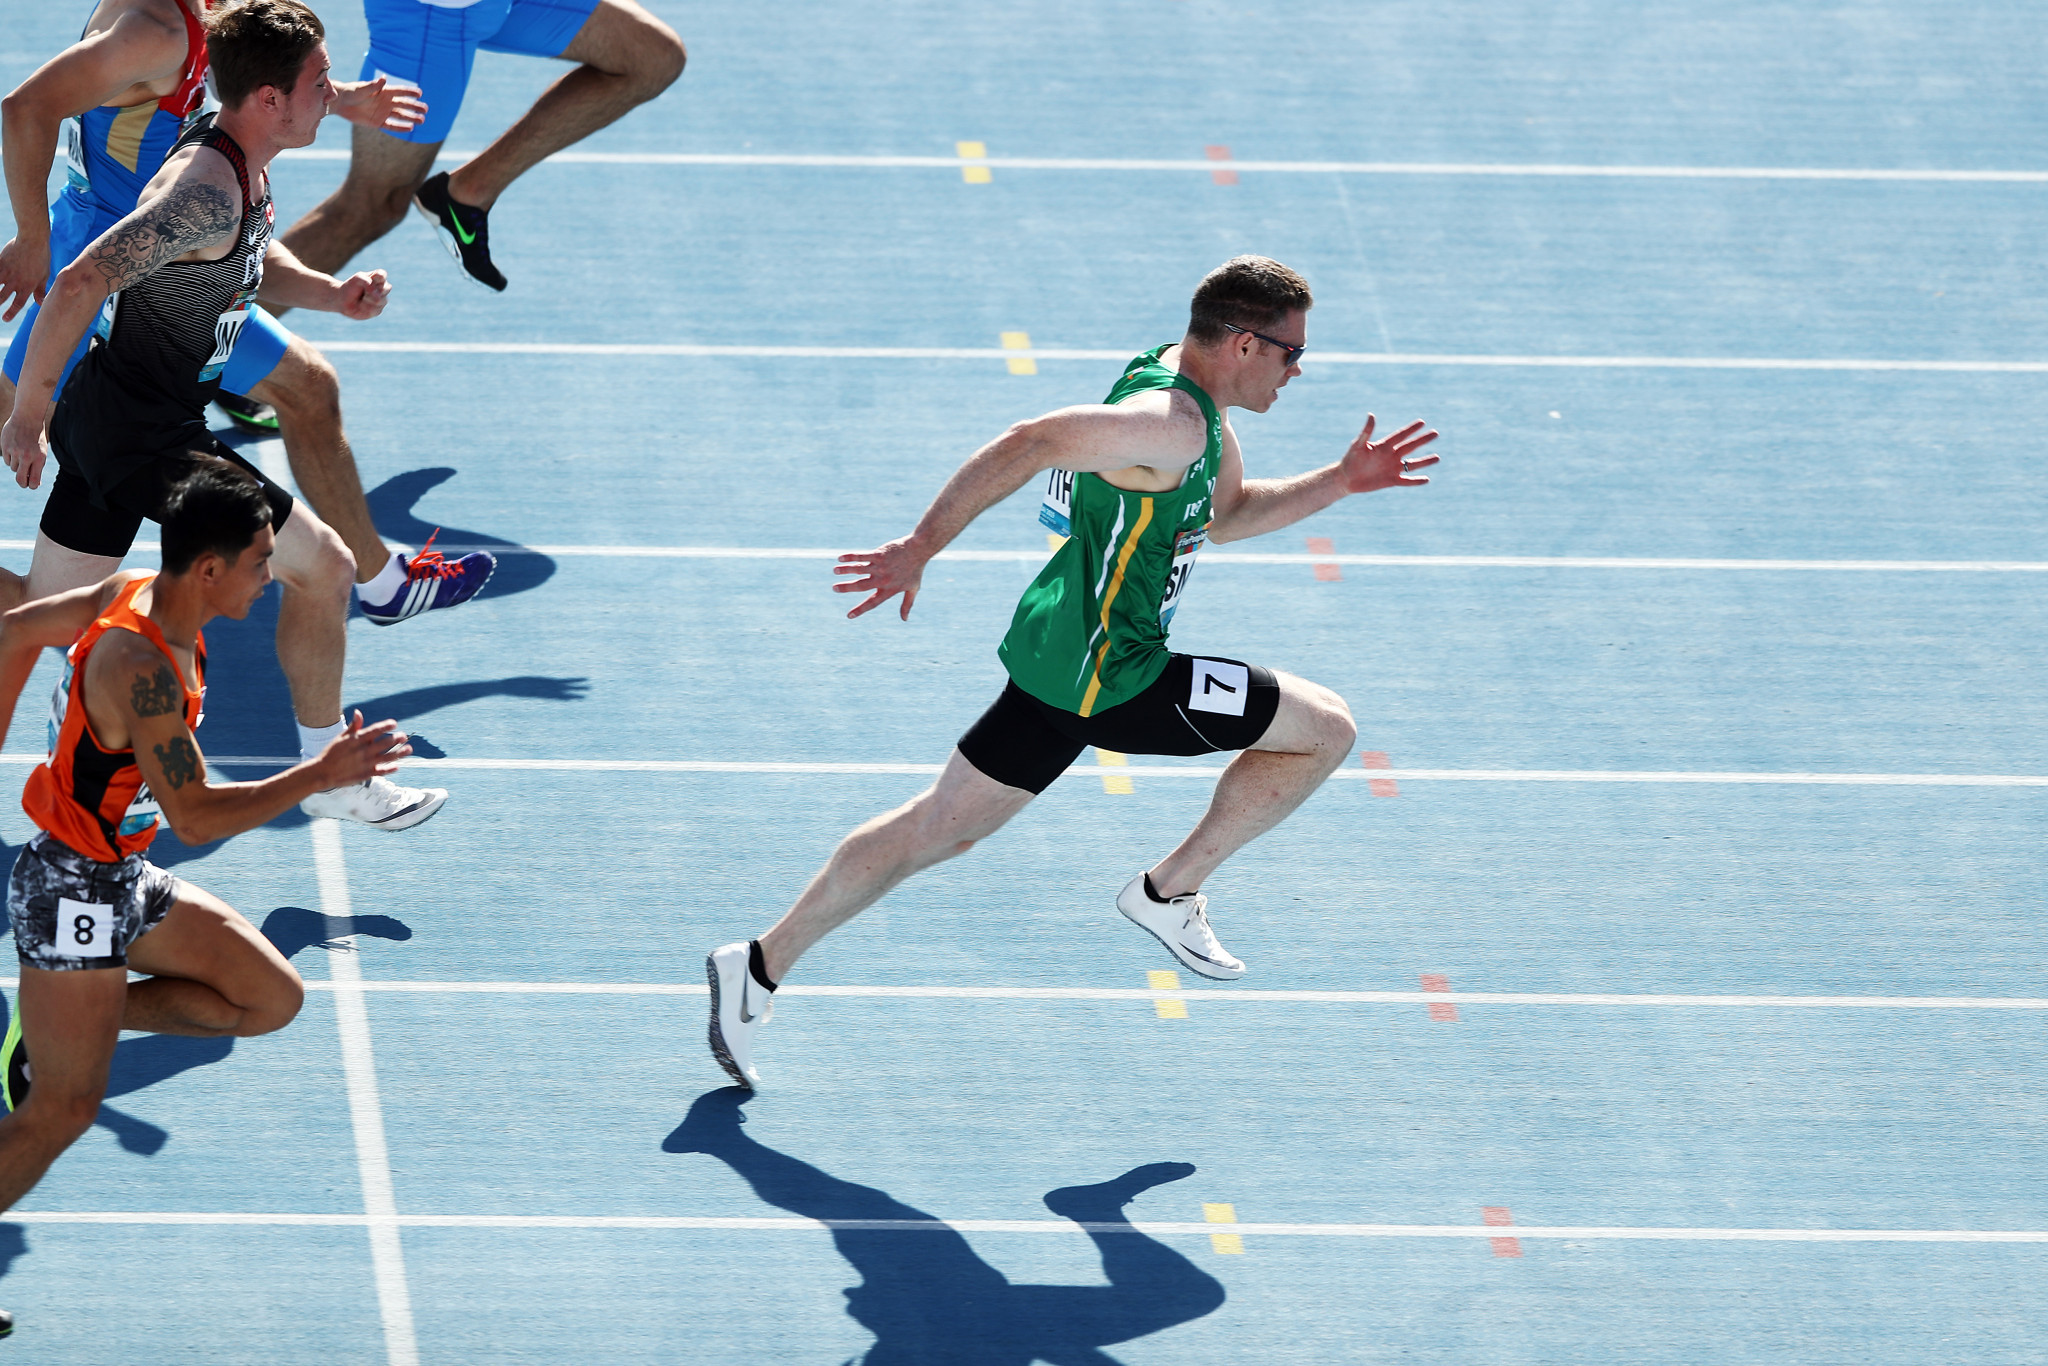 Jason Smyth has been dominant in the men's T13 100m and 200m events ©Getty Images